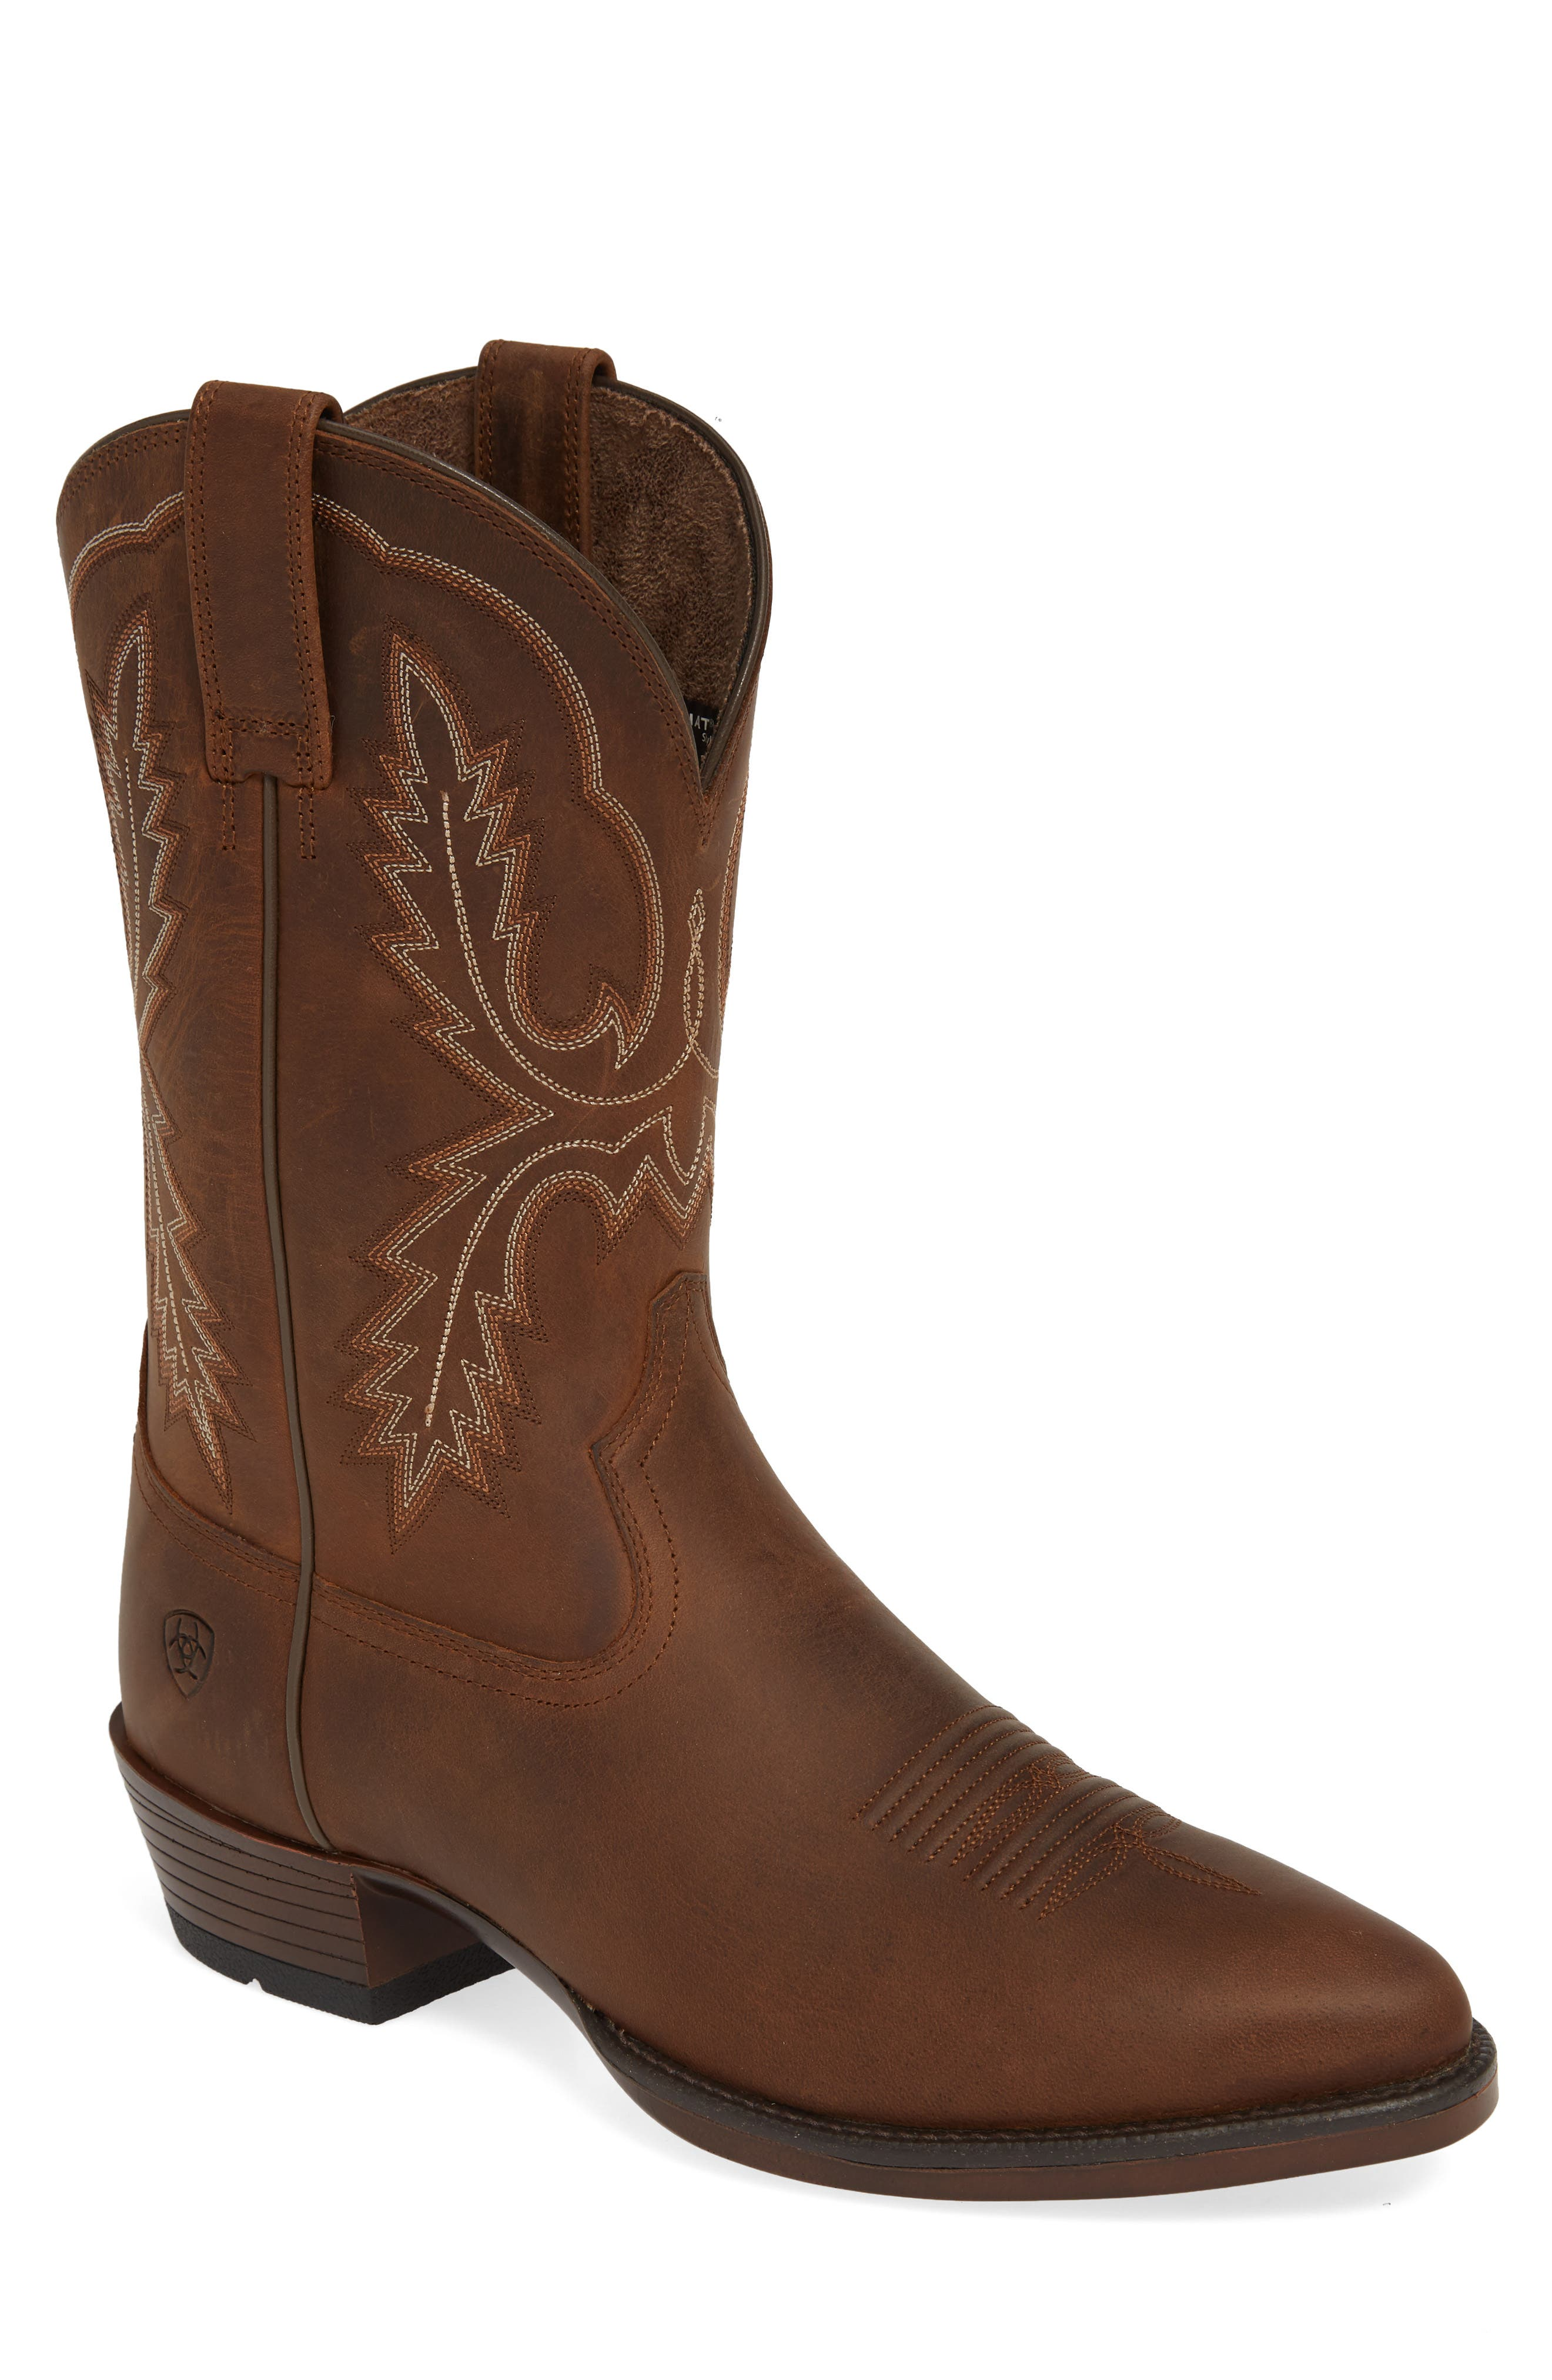 ARIAT, Bar Sour Cowboy Boot, Main thumbnail 1, color, DISTRESSED BROWN LEATHER